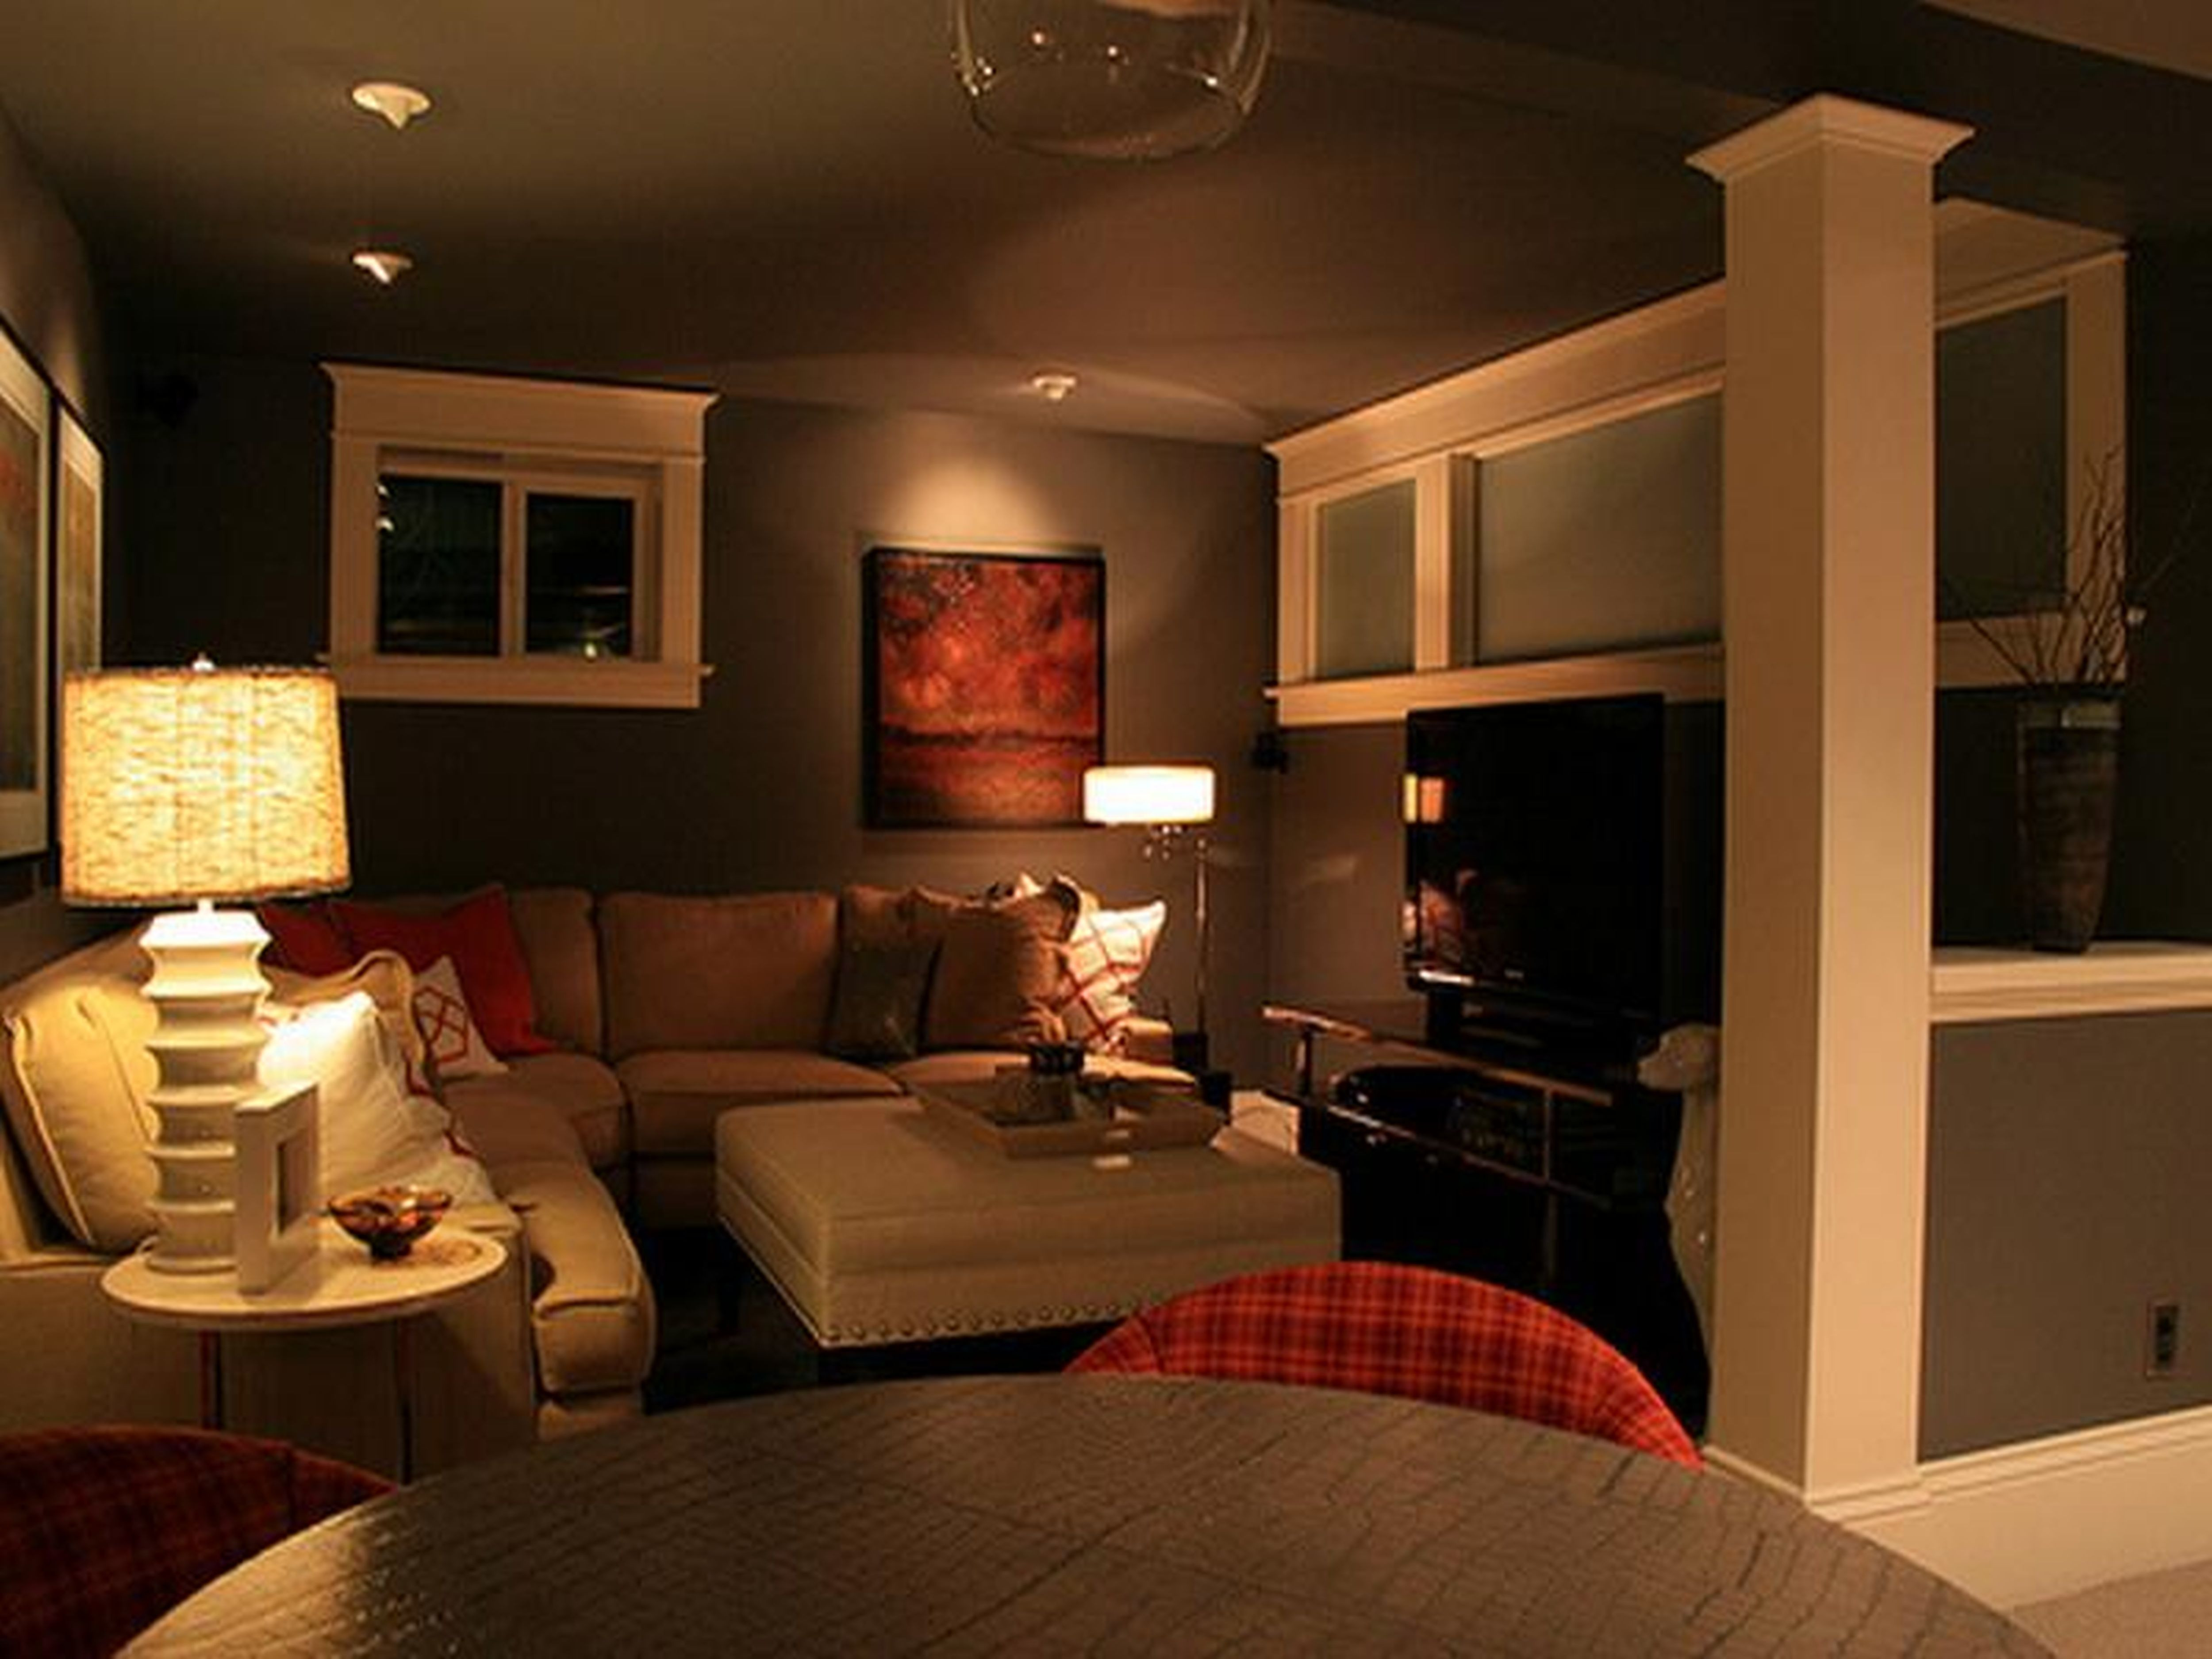 Best ideas about Small Basement Ideas On A Budget . Save or Pin Tiny basement redo inexpensive basement finishing ideas Now.